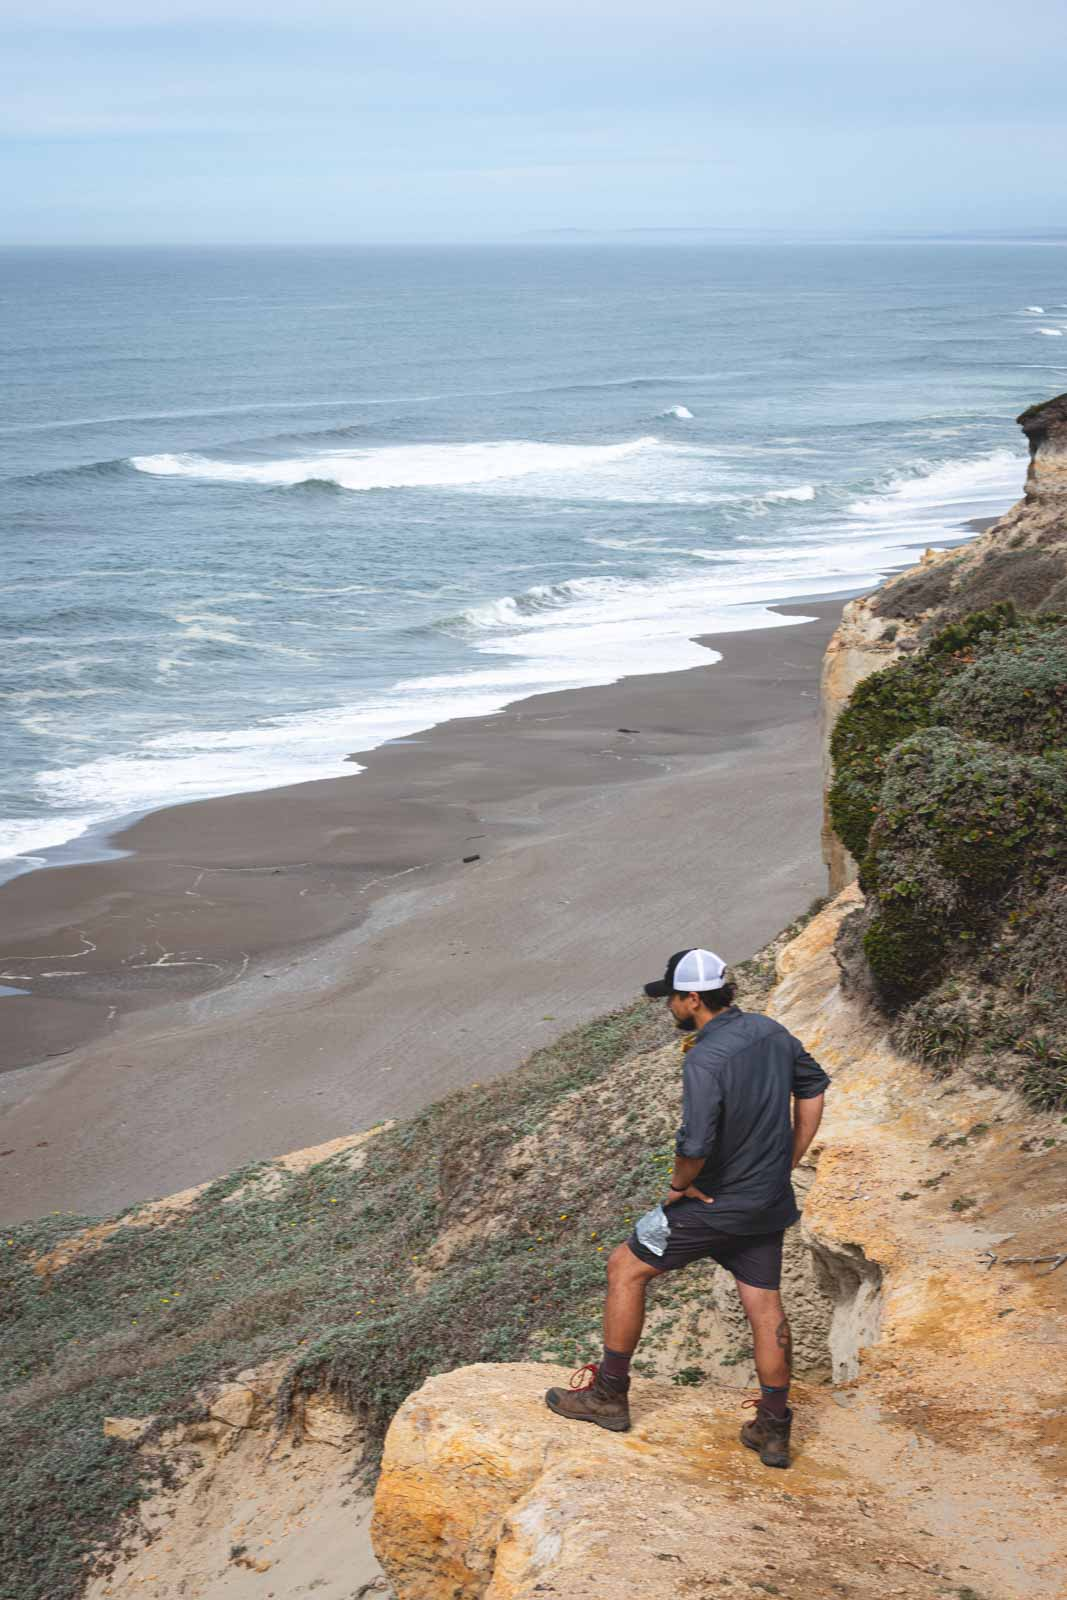 Man hiking and looking out over beach and ocean at Floras Lake State Park, home to one of the best beaches in Oregon